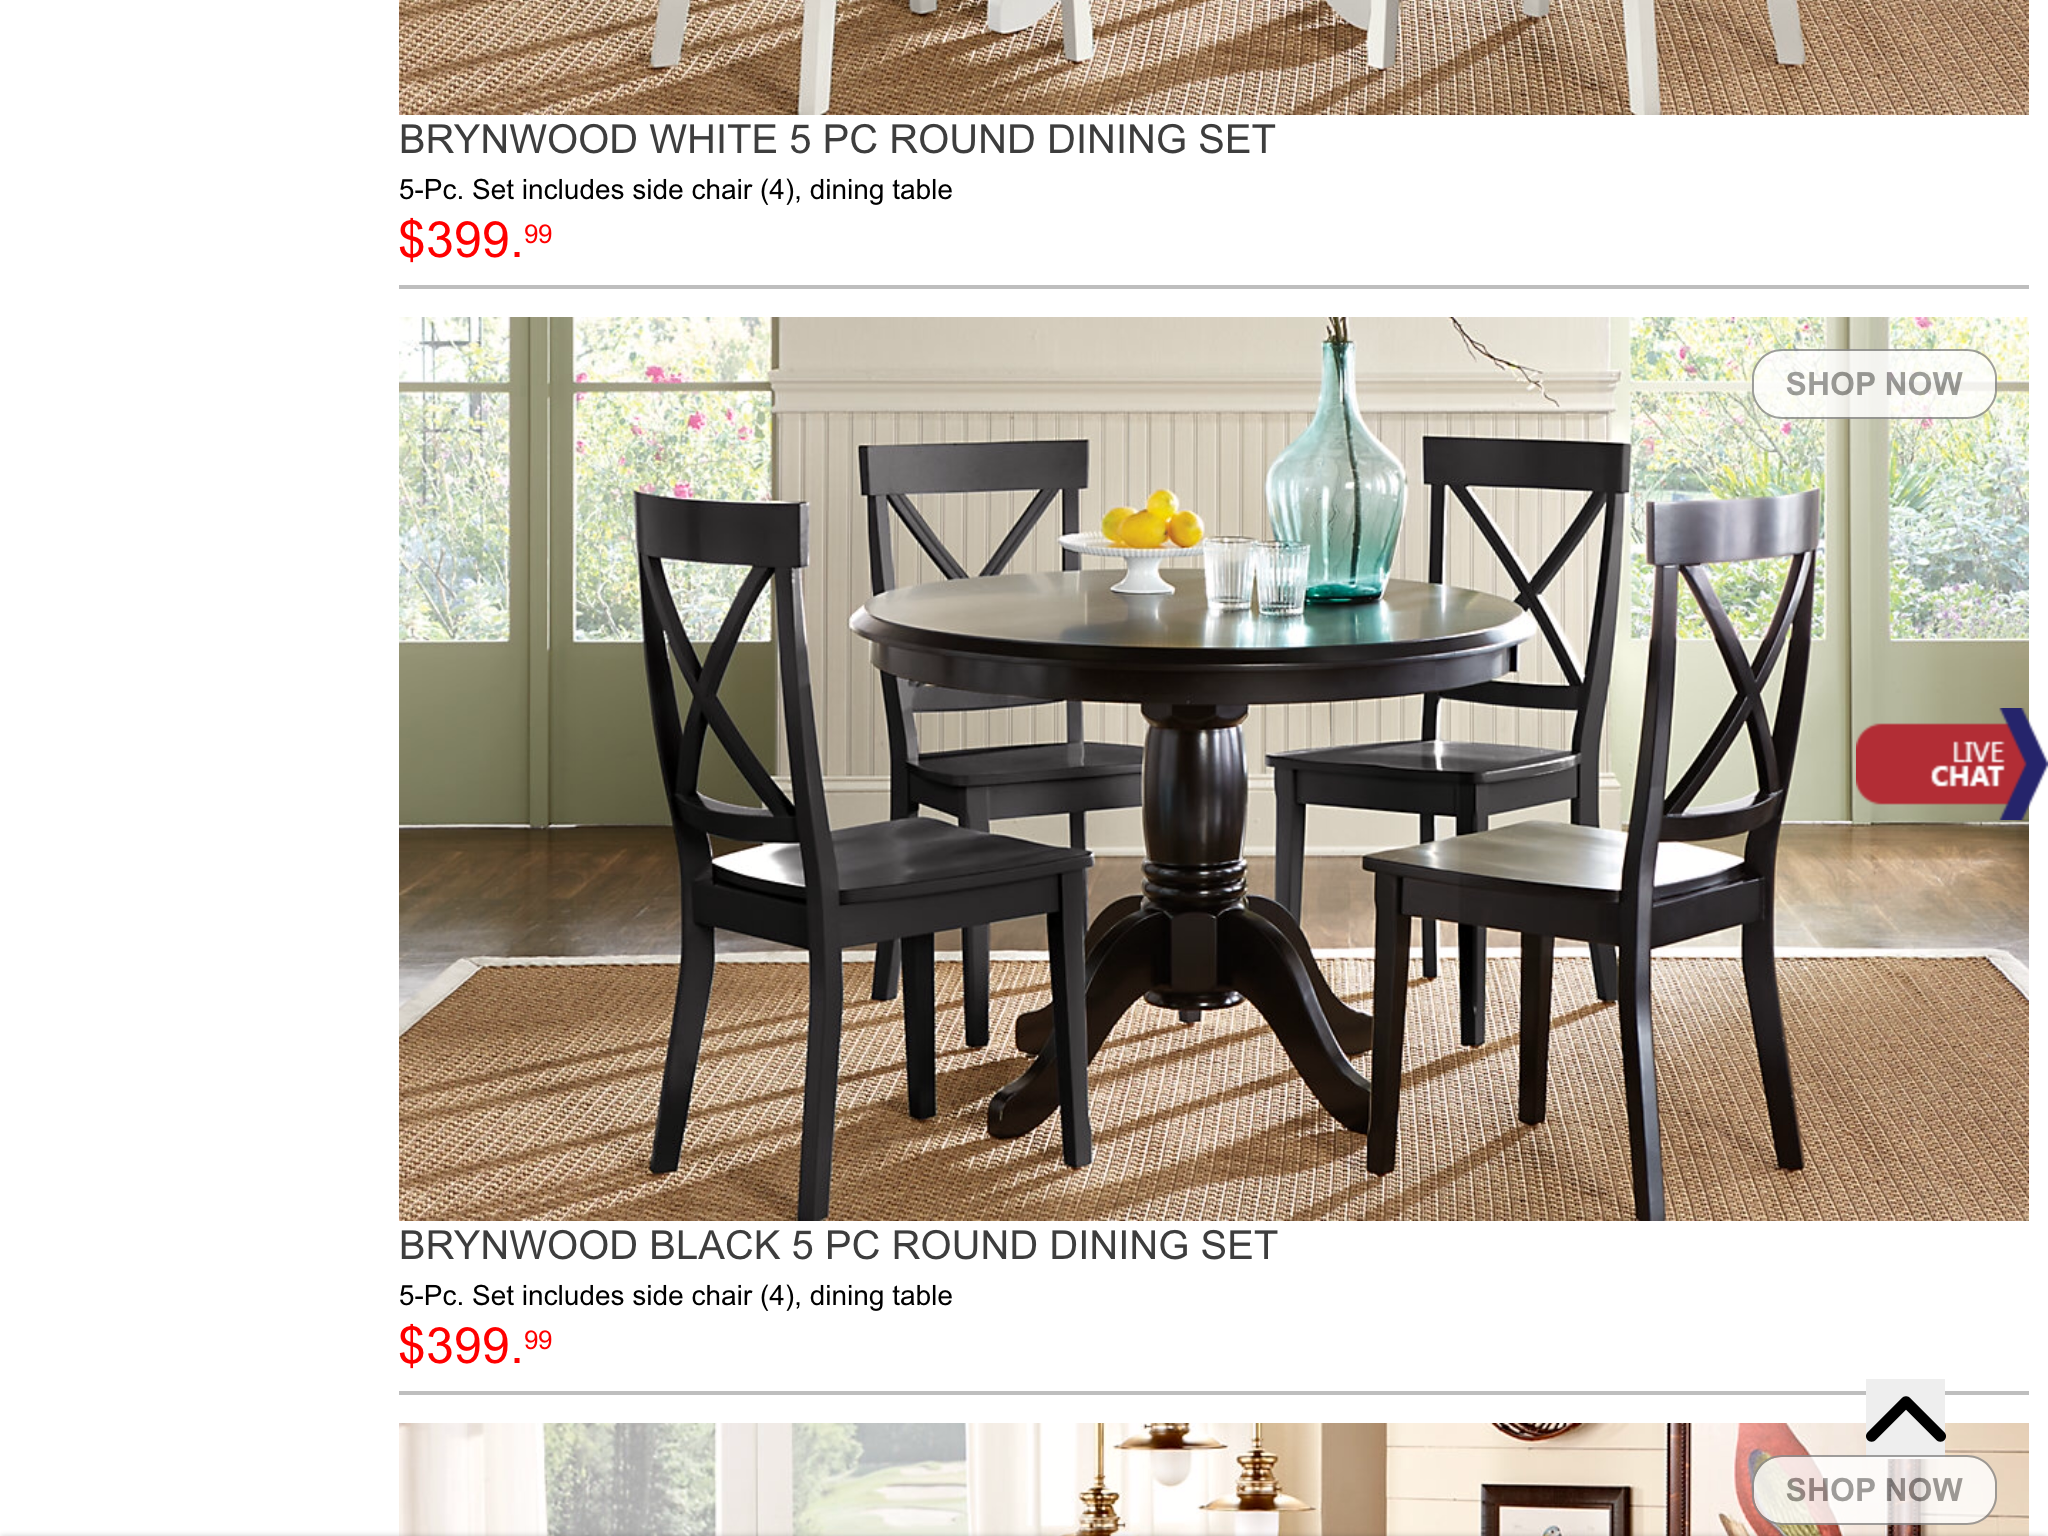 Brynwood white 5 pc round dining set dining room sets colors - Round Dining Tables Round Dining Table